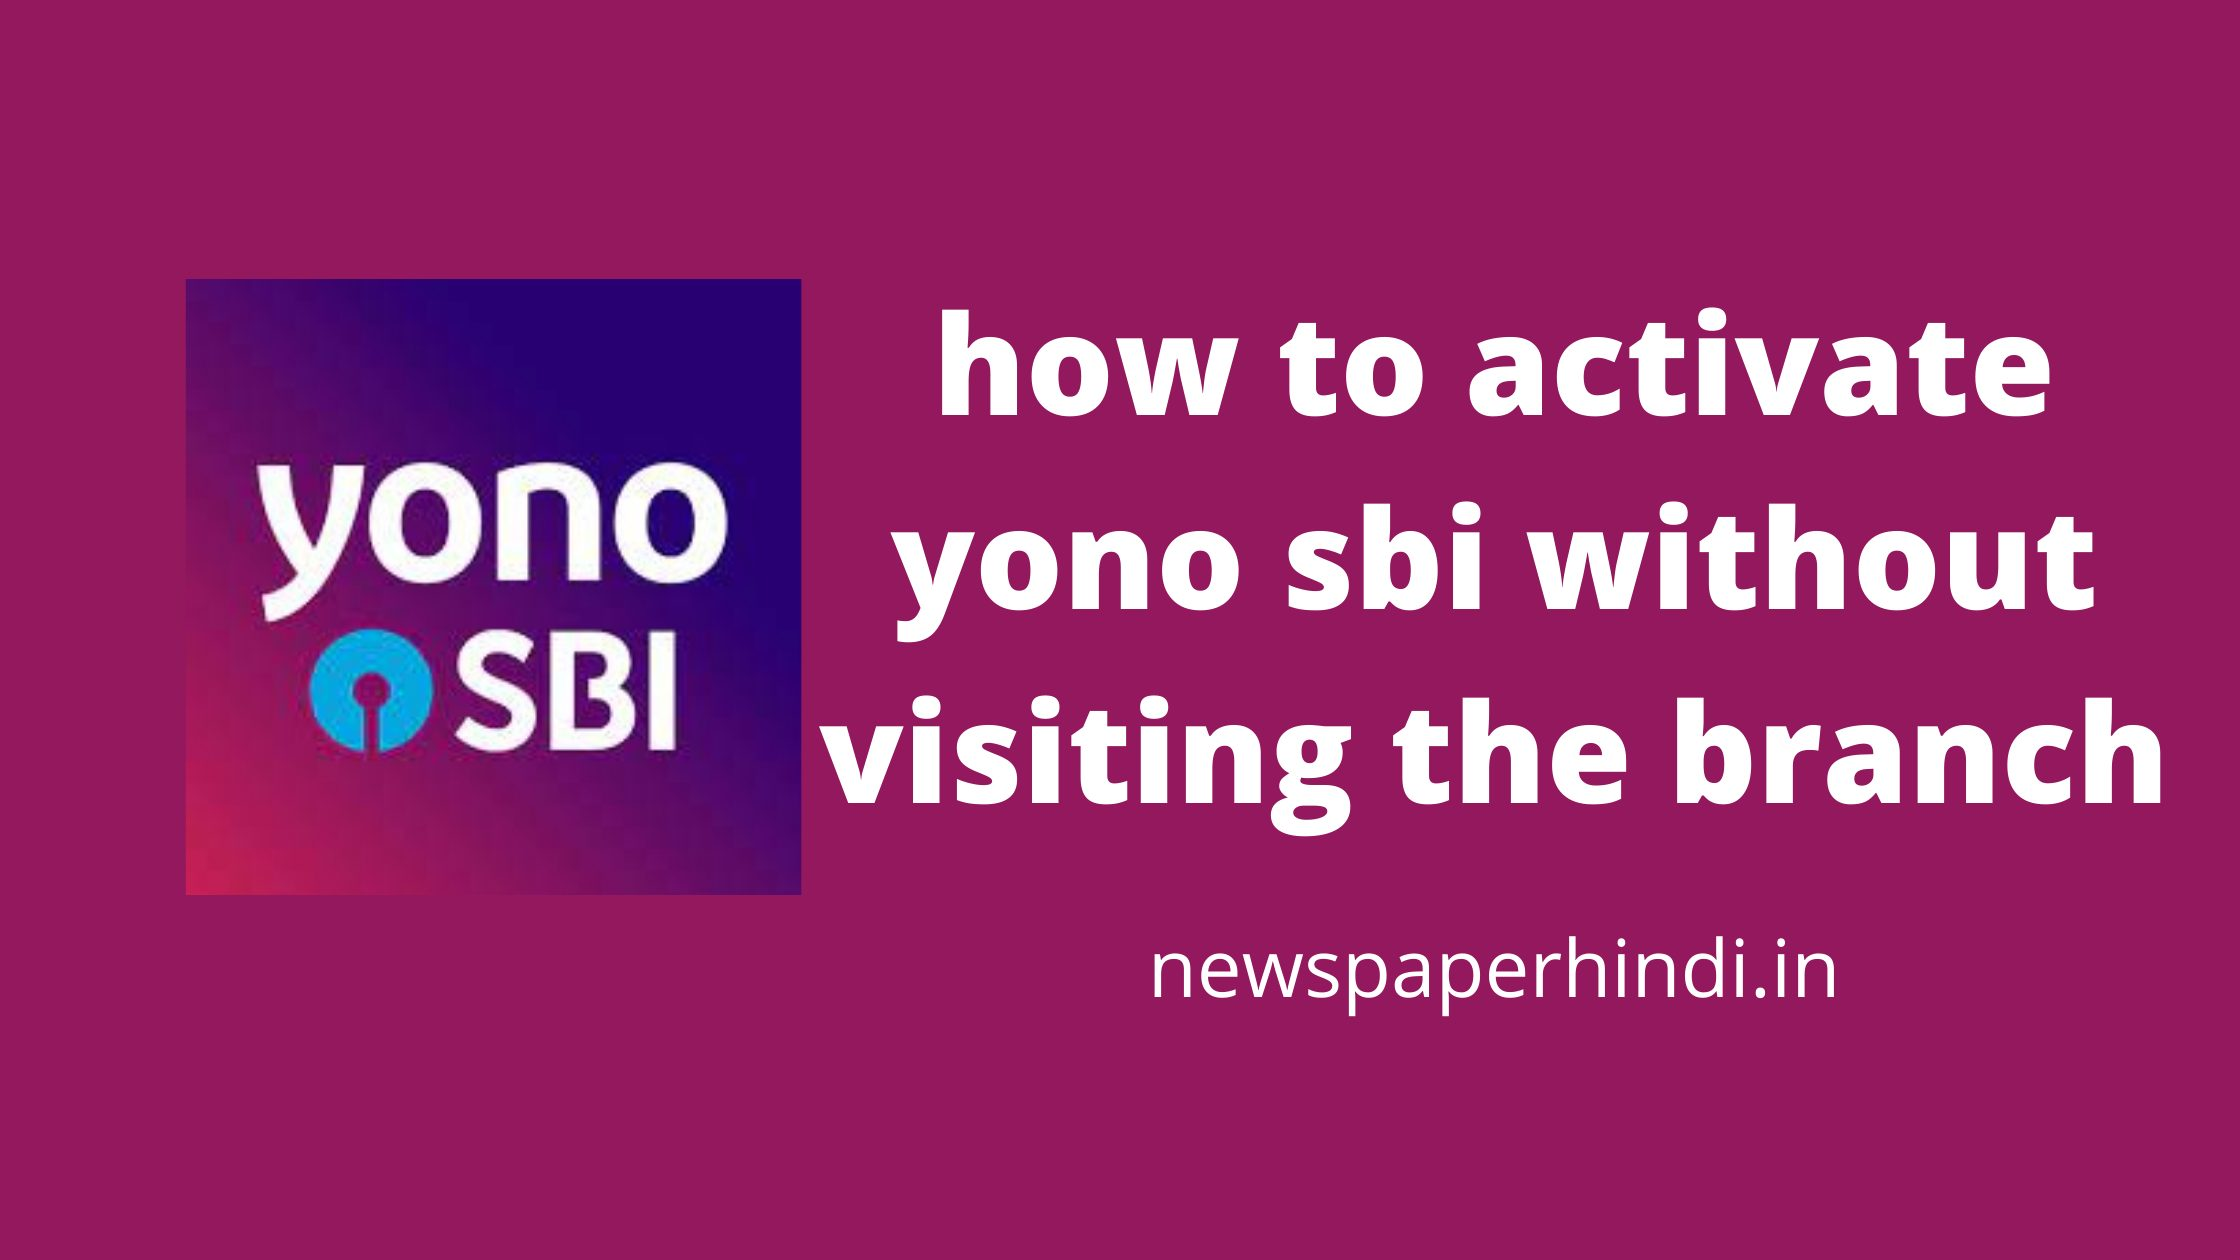 how to activate yono sbi without visiting branch